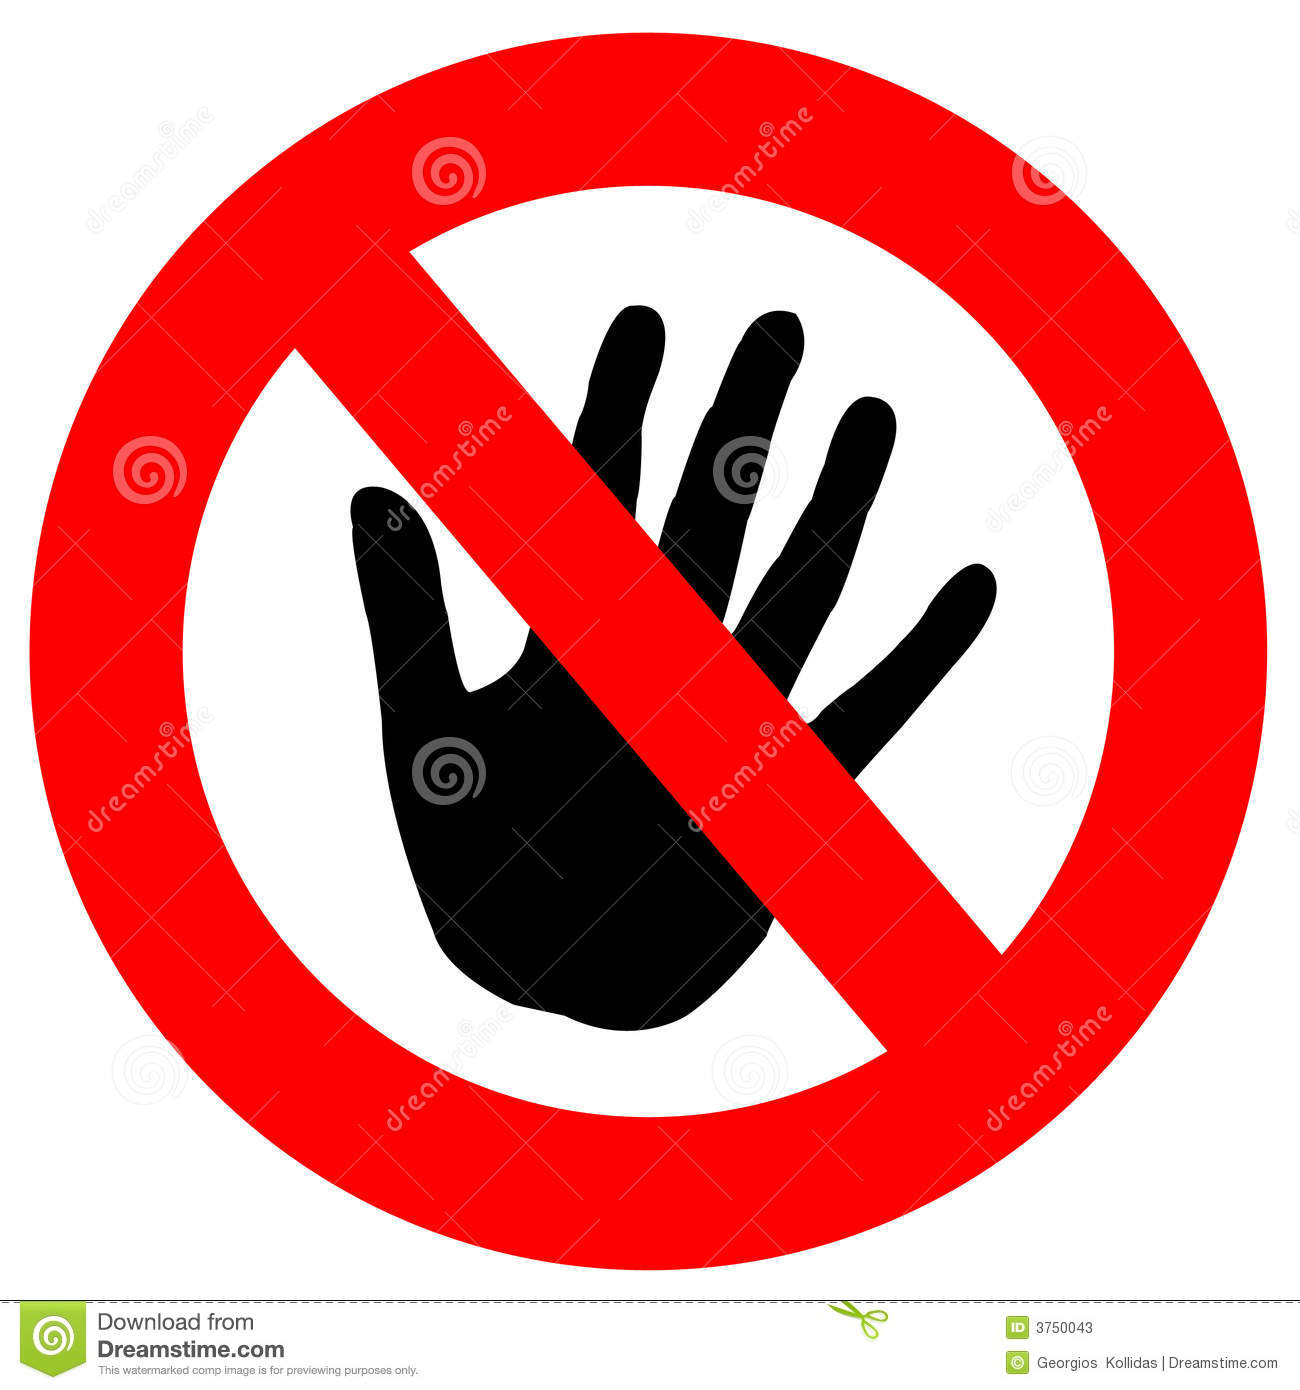 Clipart do not touch.